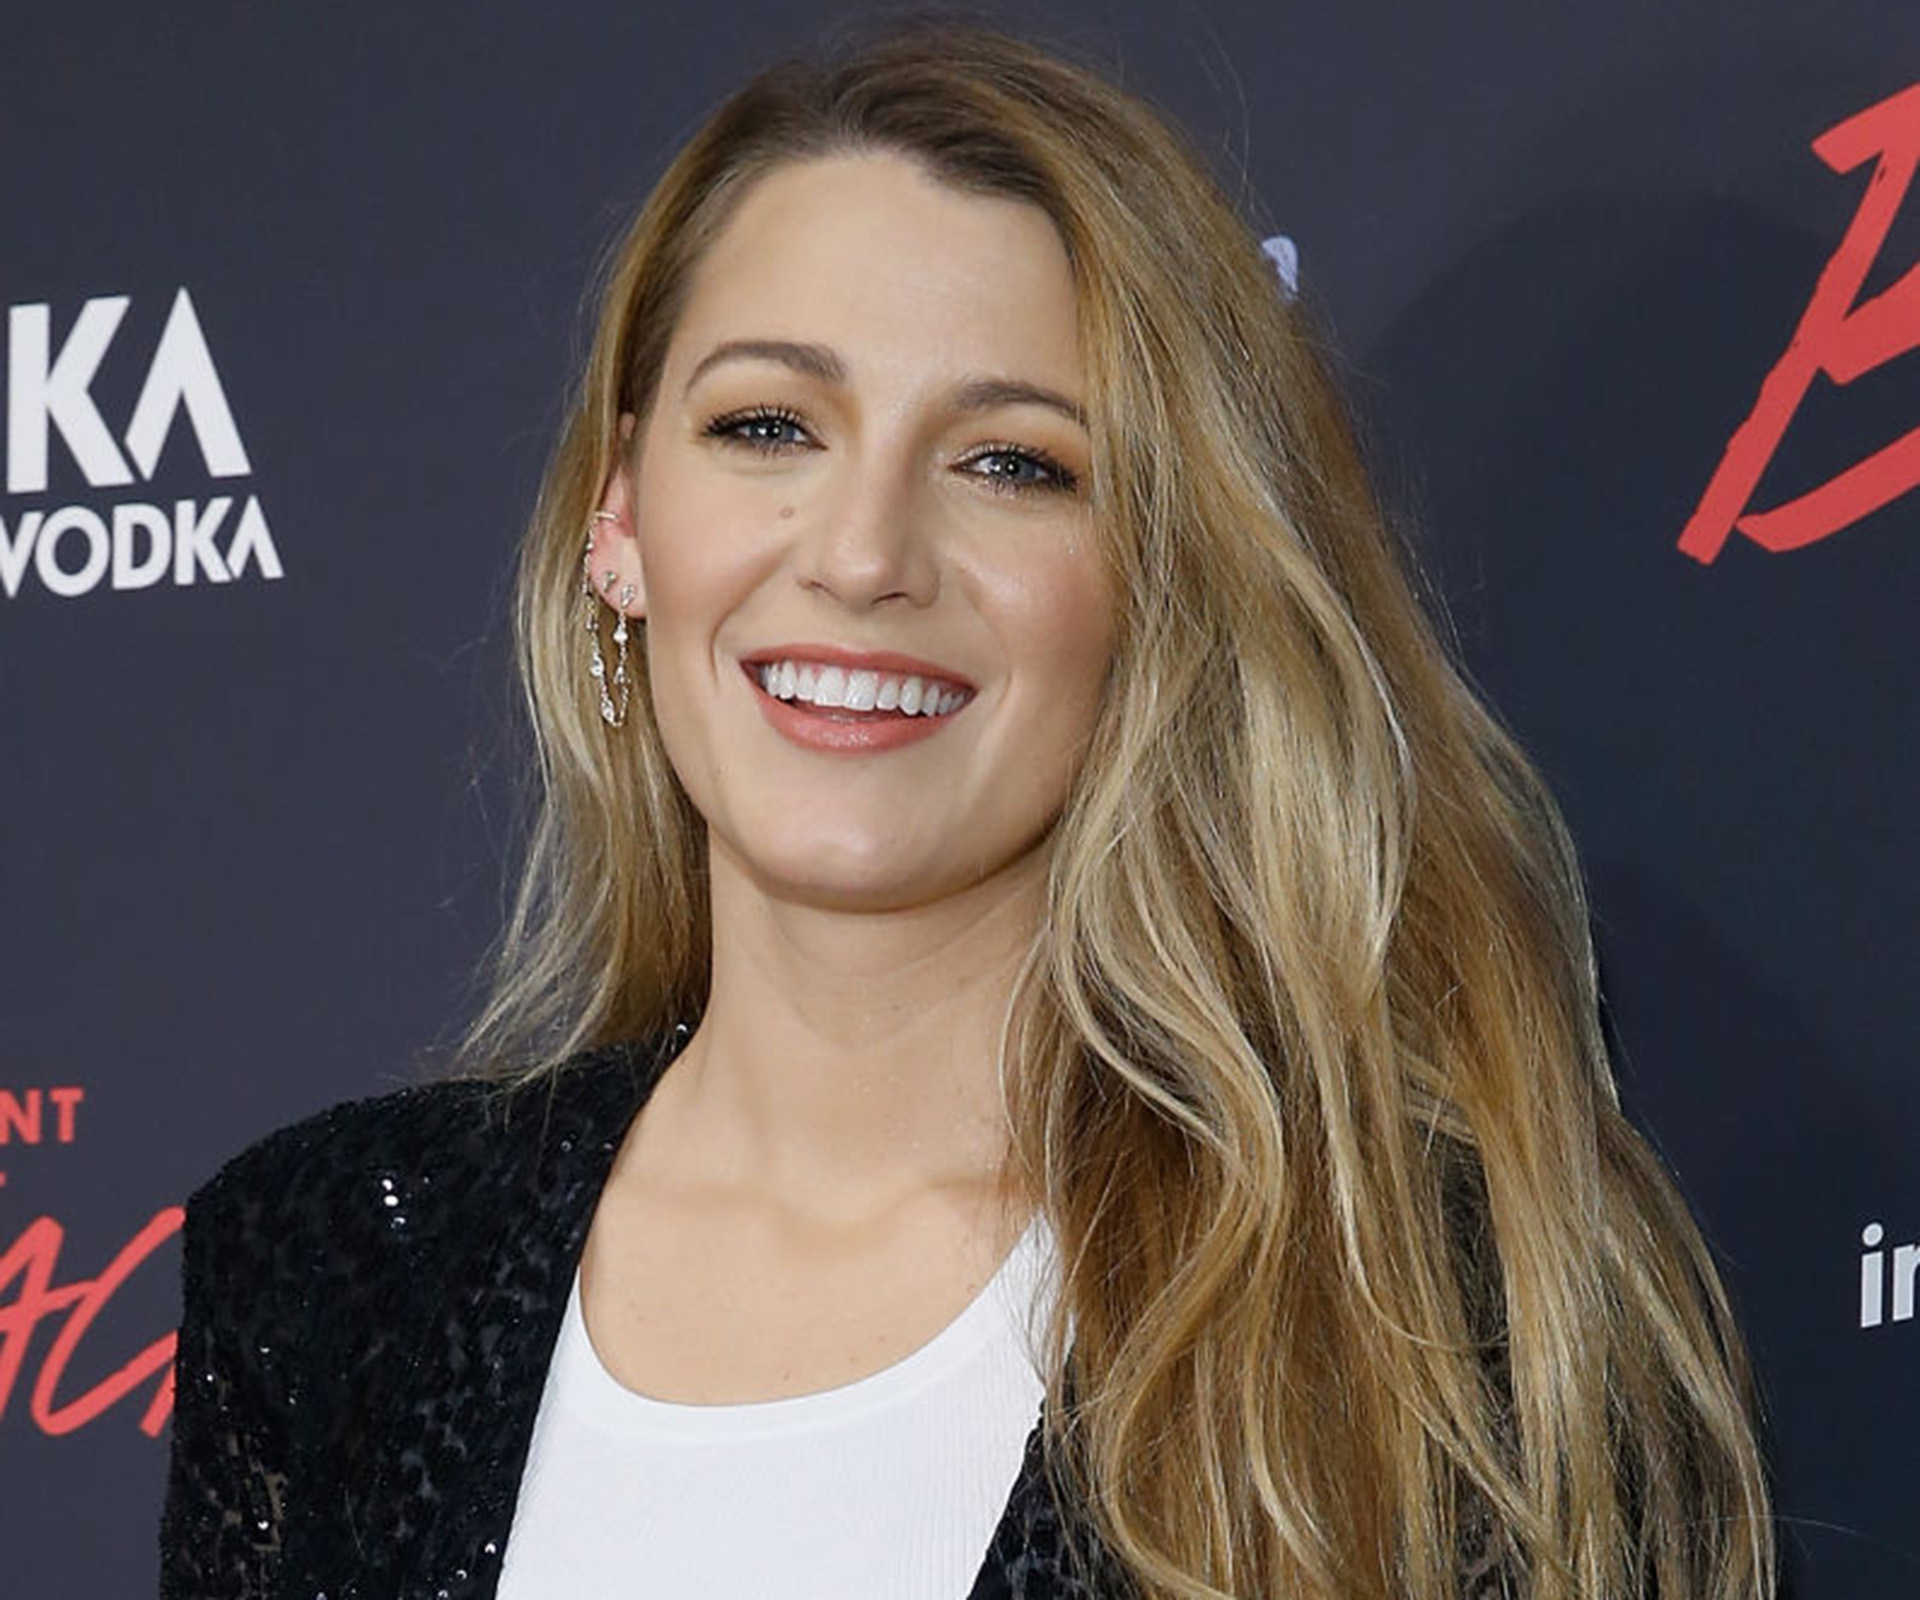 Blake Lively has said she wants a Gossip Girl reunion show AGAIN